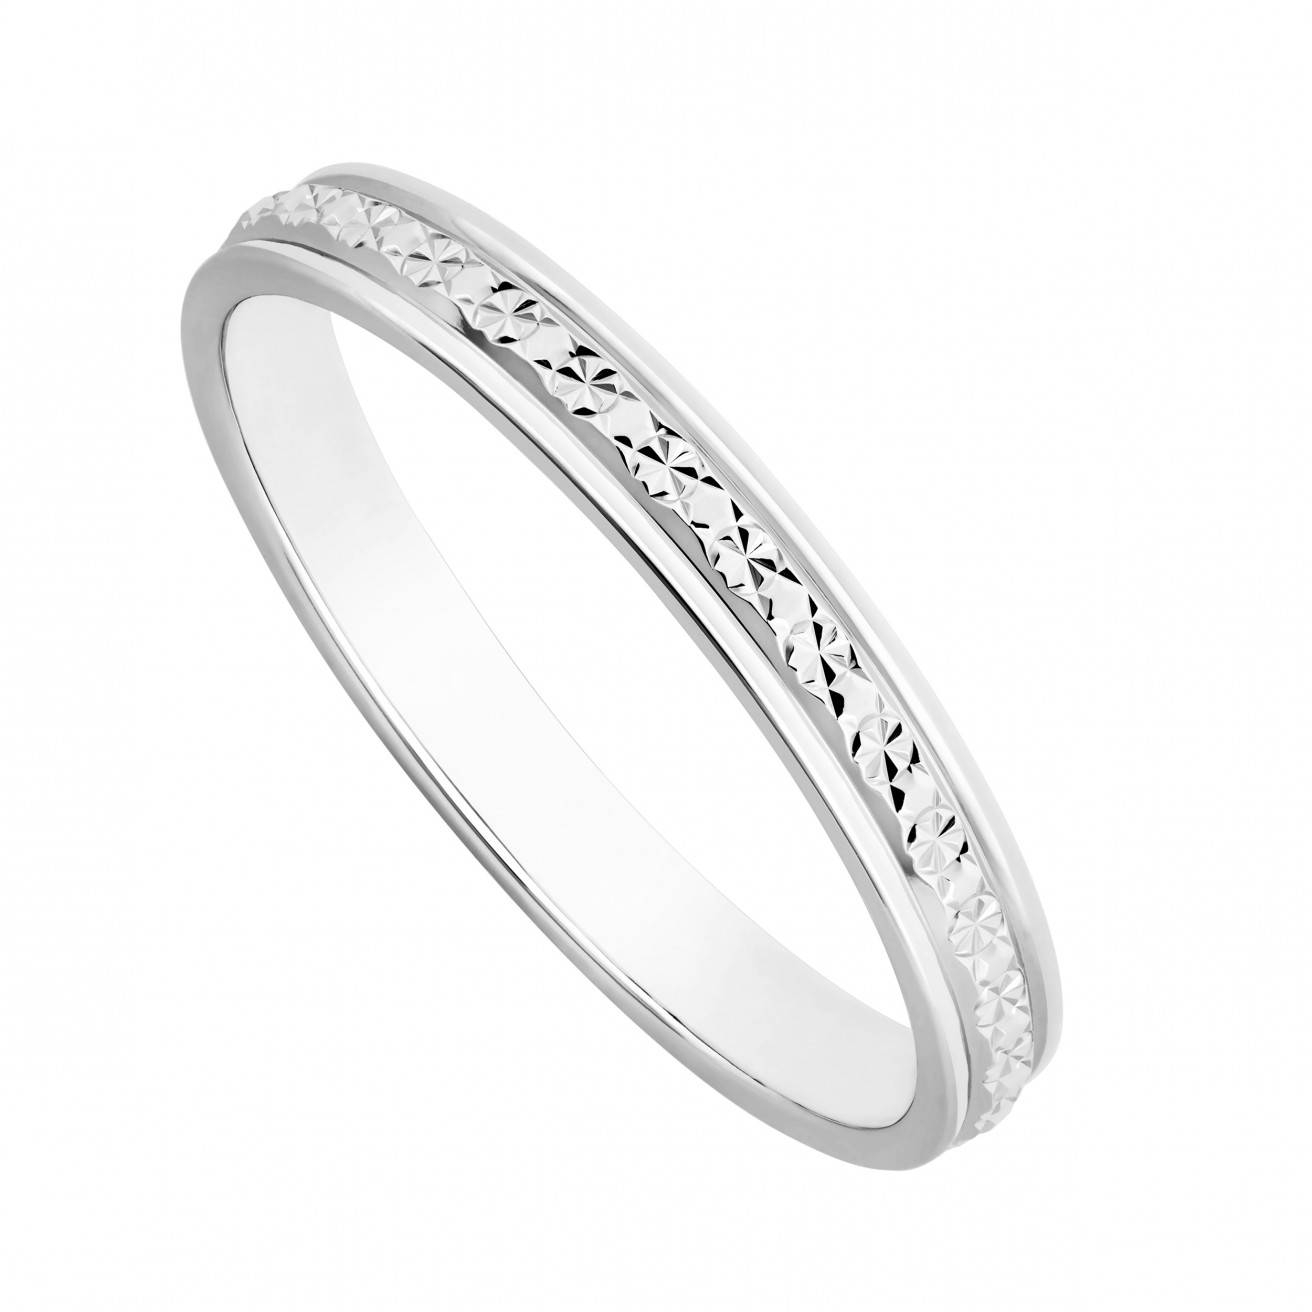 Beautifully Crafted Wedding Rings For Him And Her Regarding Platinum Wedding Bands For Her (View 2 of 15)